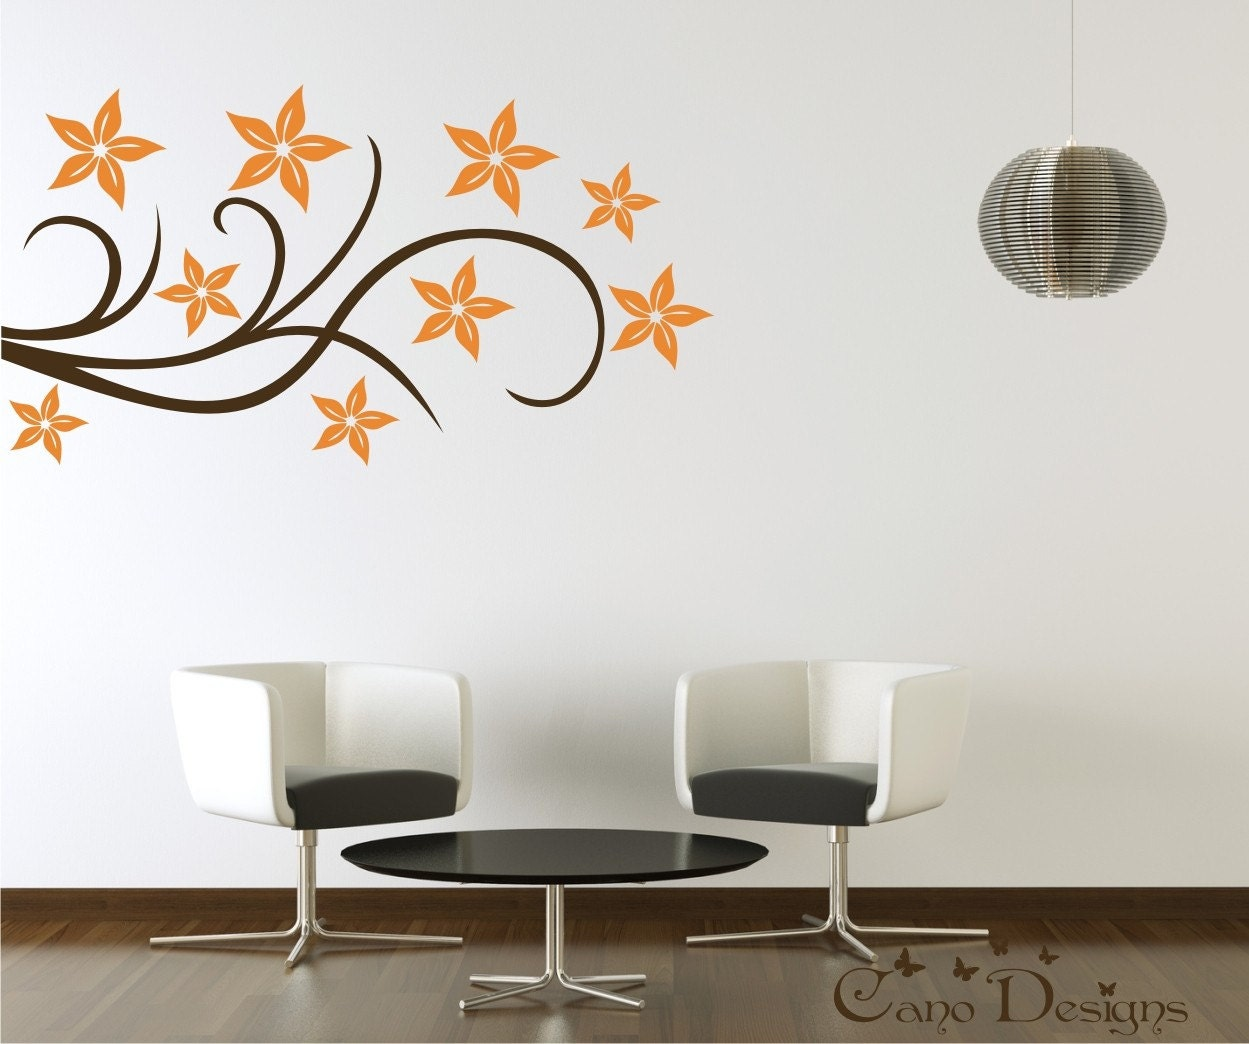 Wall Art Stickers Heaven : Floral design vinyl decal wall decals stickers removable